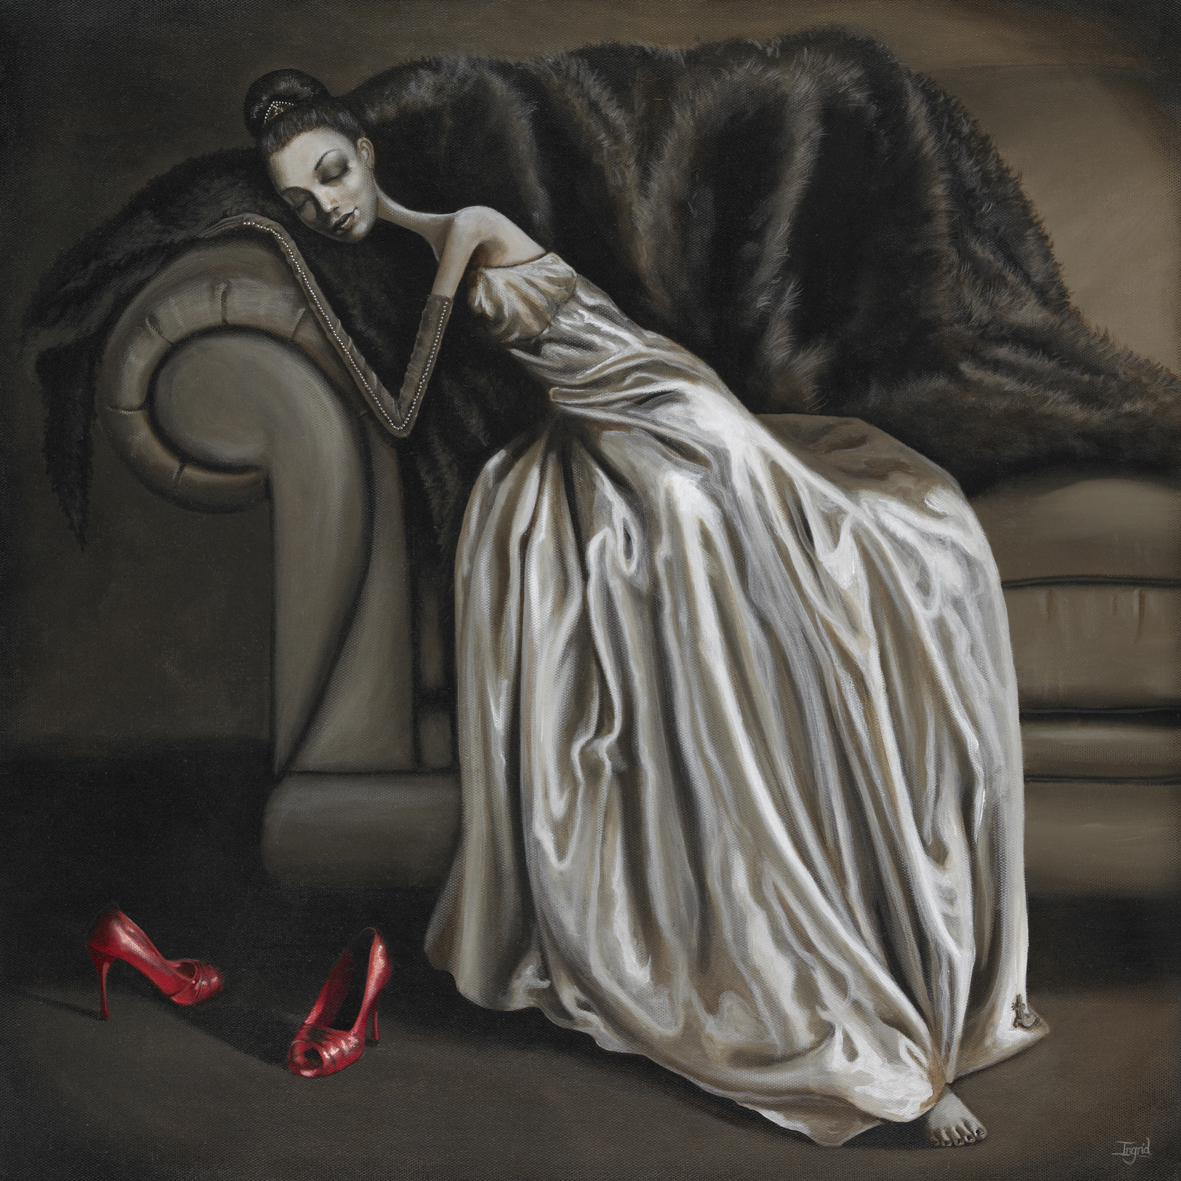 Red Shoes – SOLD